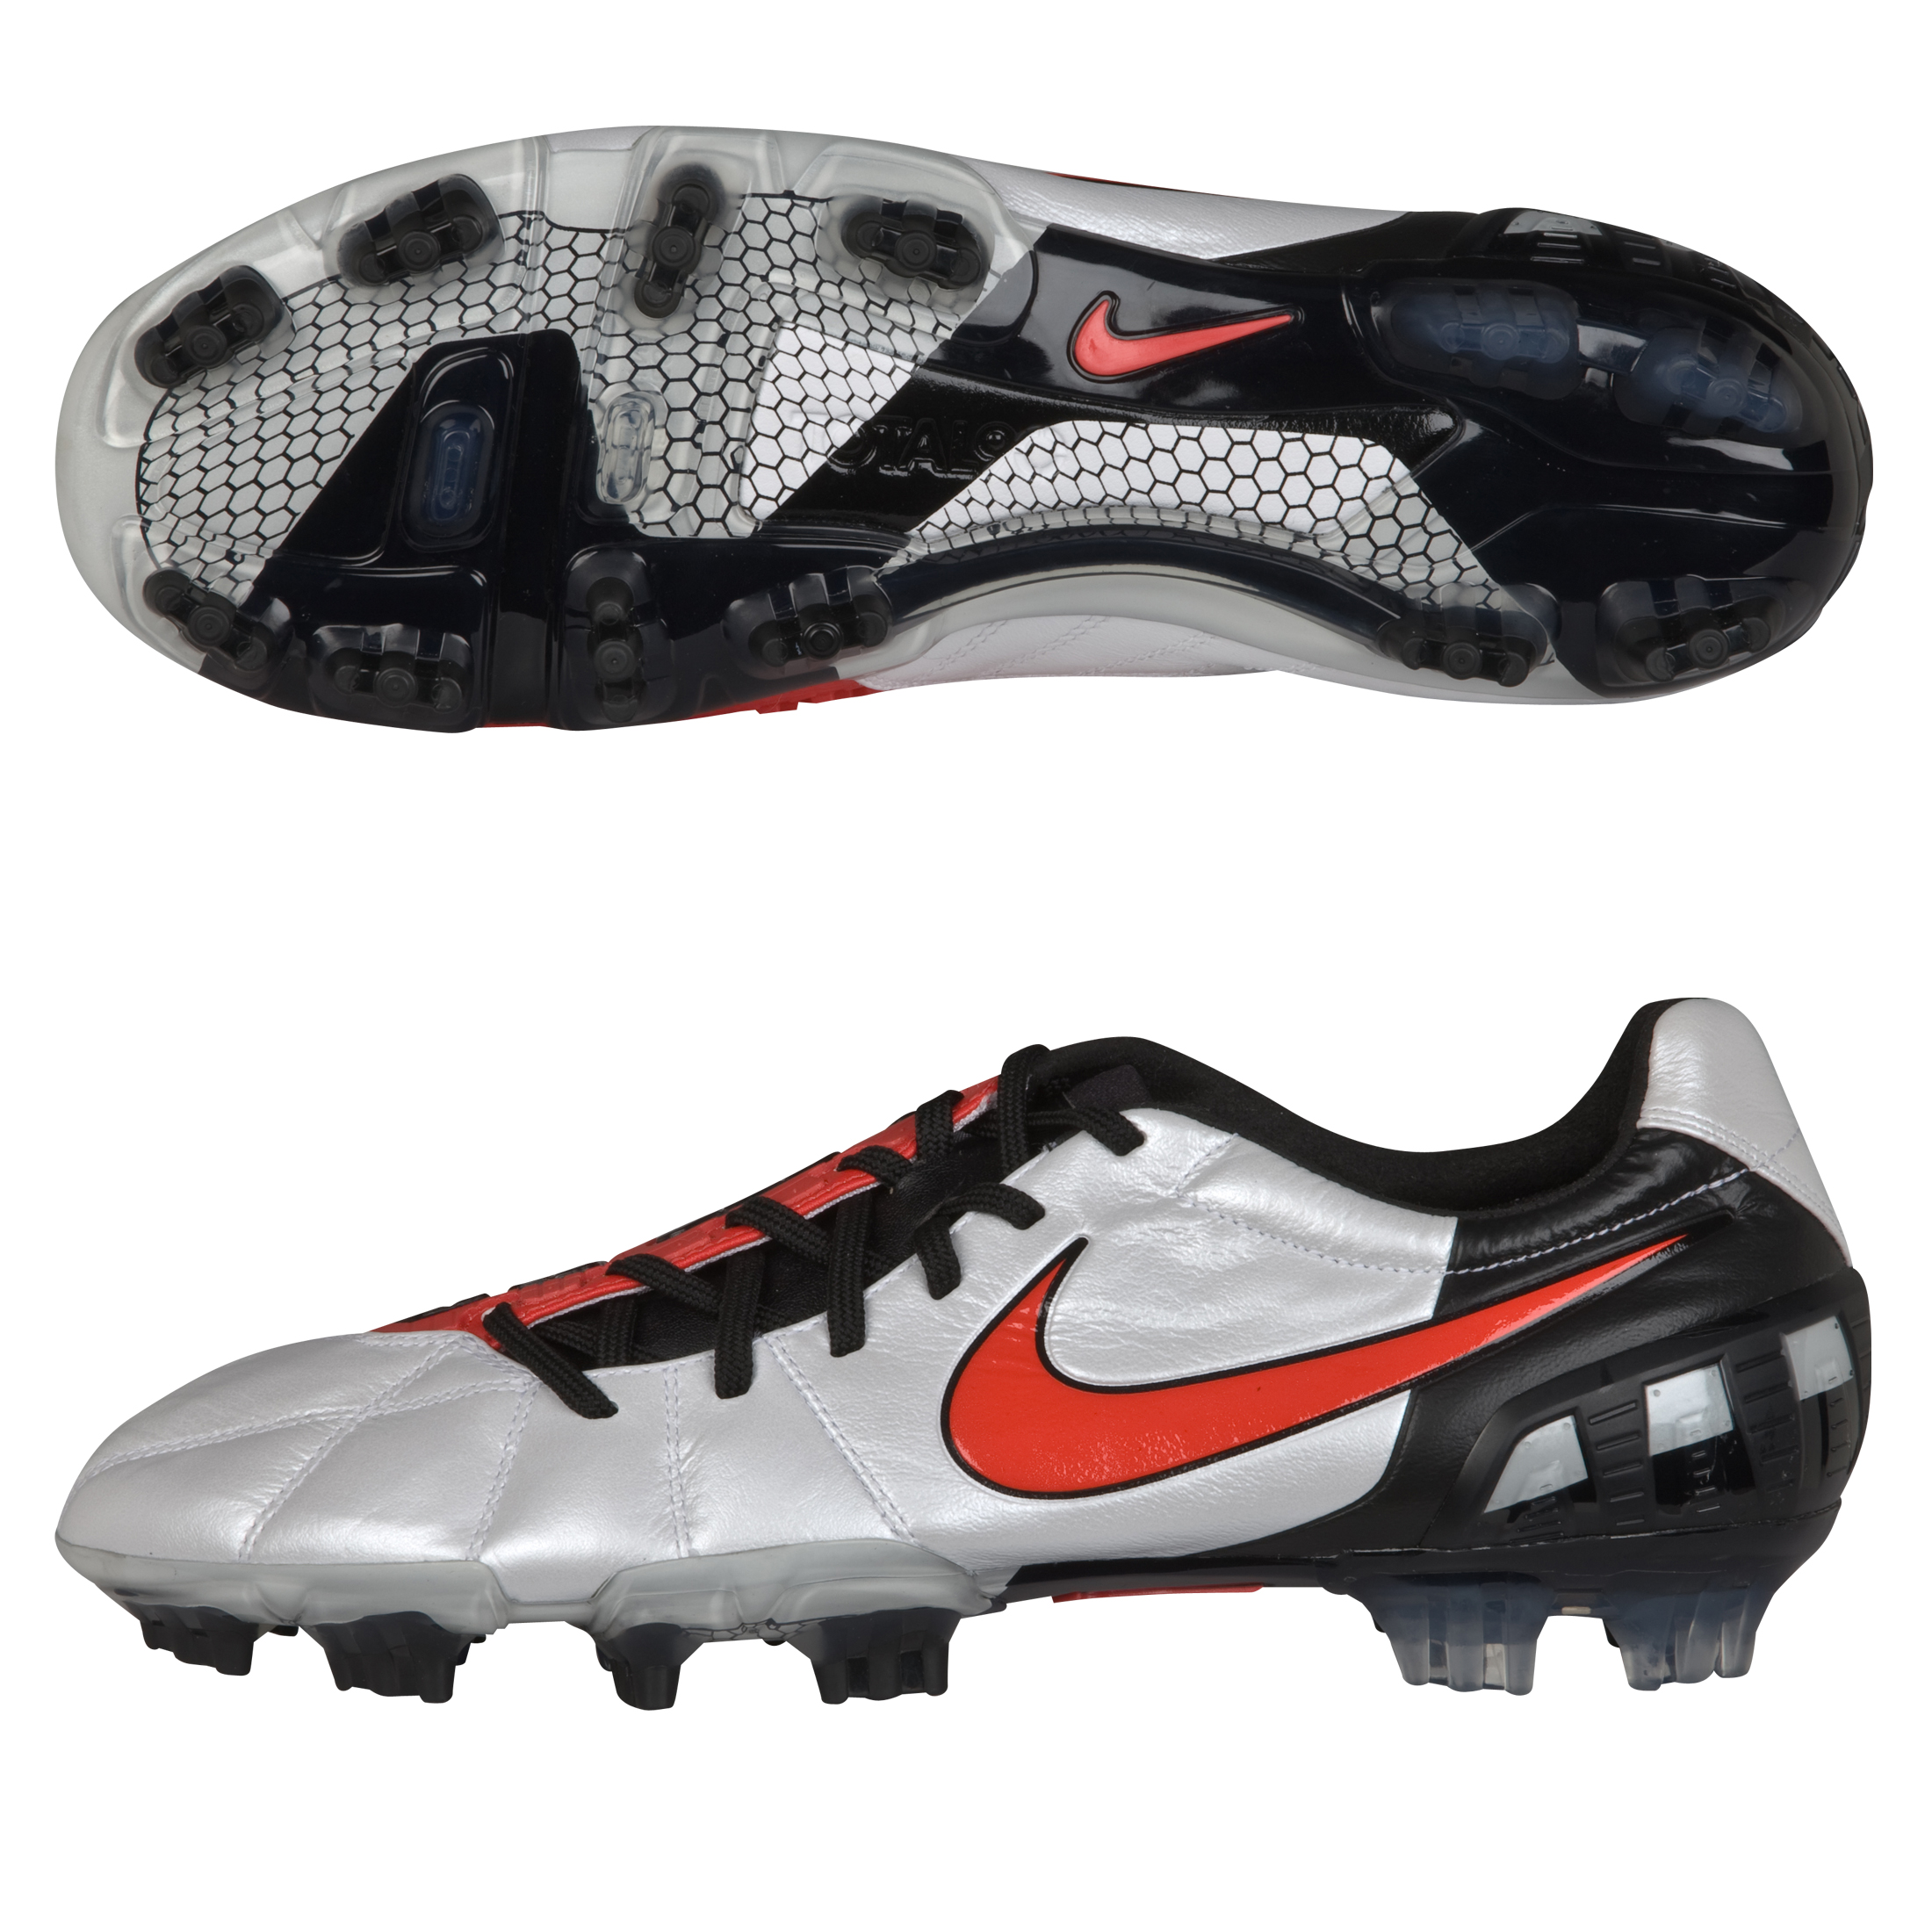 Nike T90 Laser III K-Firm Ground White/Challenge Red/Black